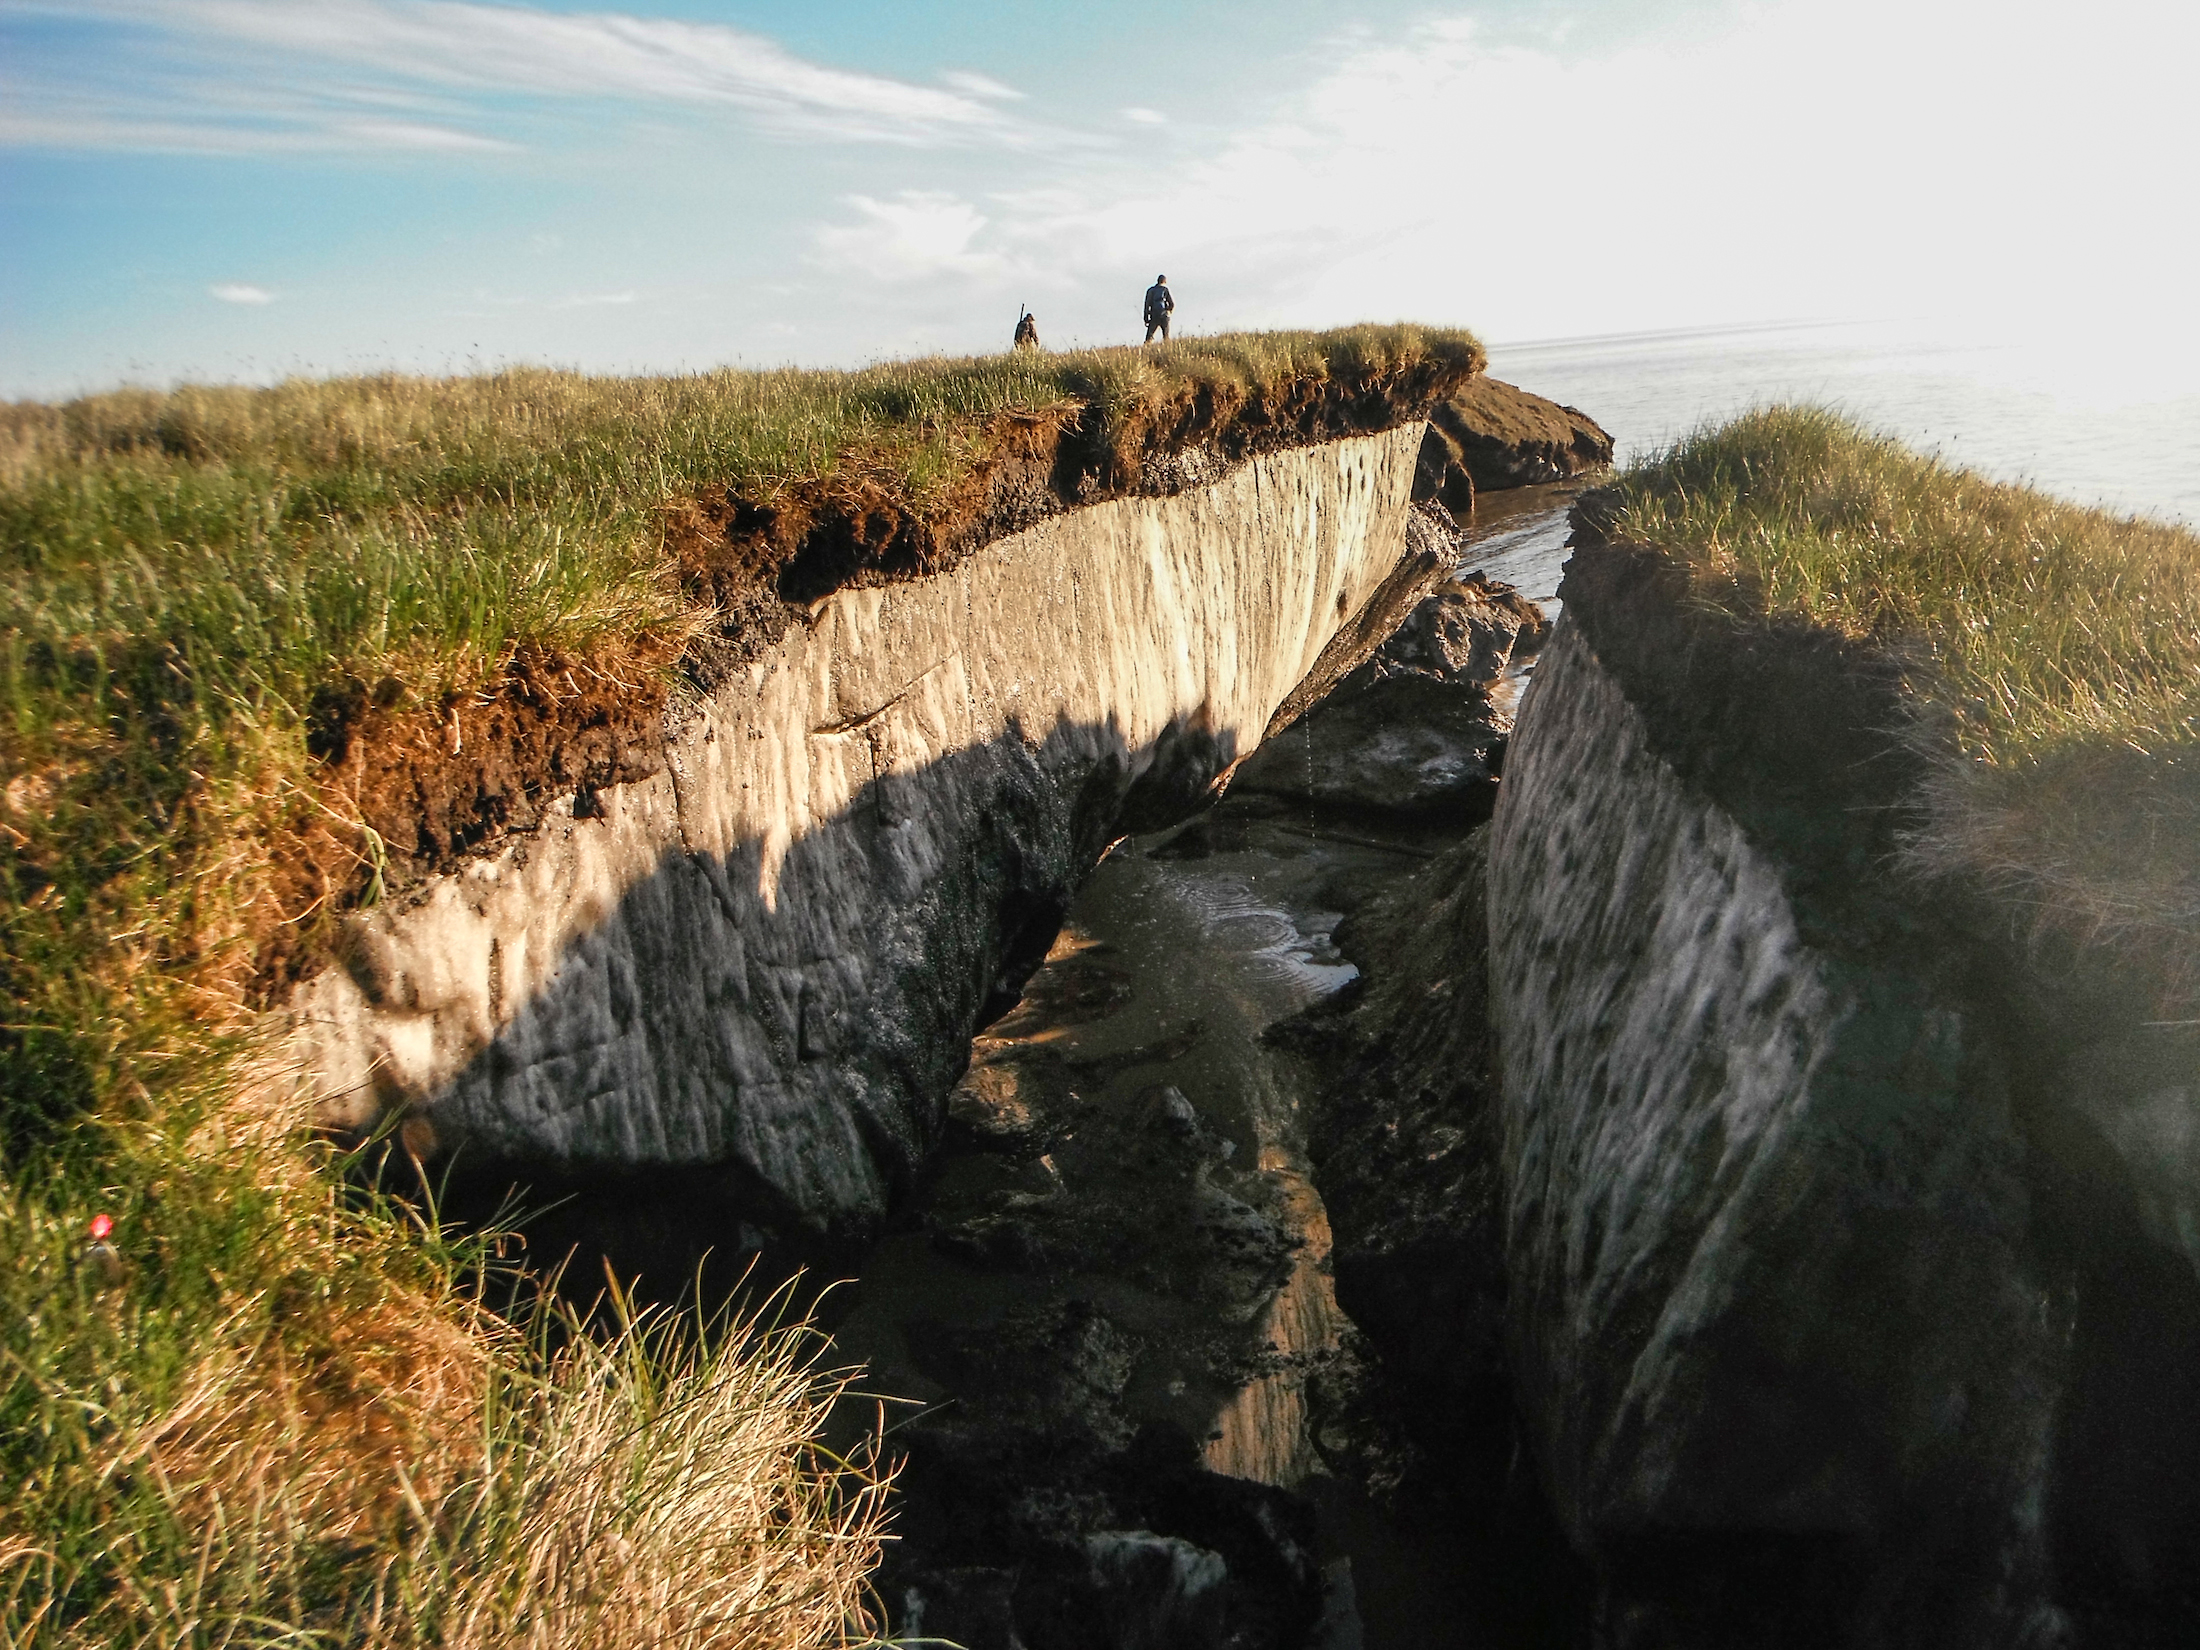 Coastal erosion reveals the extent of ice-rich permafrost underlying active layer  in the Teshekpuk Lake special area of Alaska's National Petroleum Reserve . (Photo: Brandt Meixell/USGS)